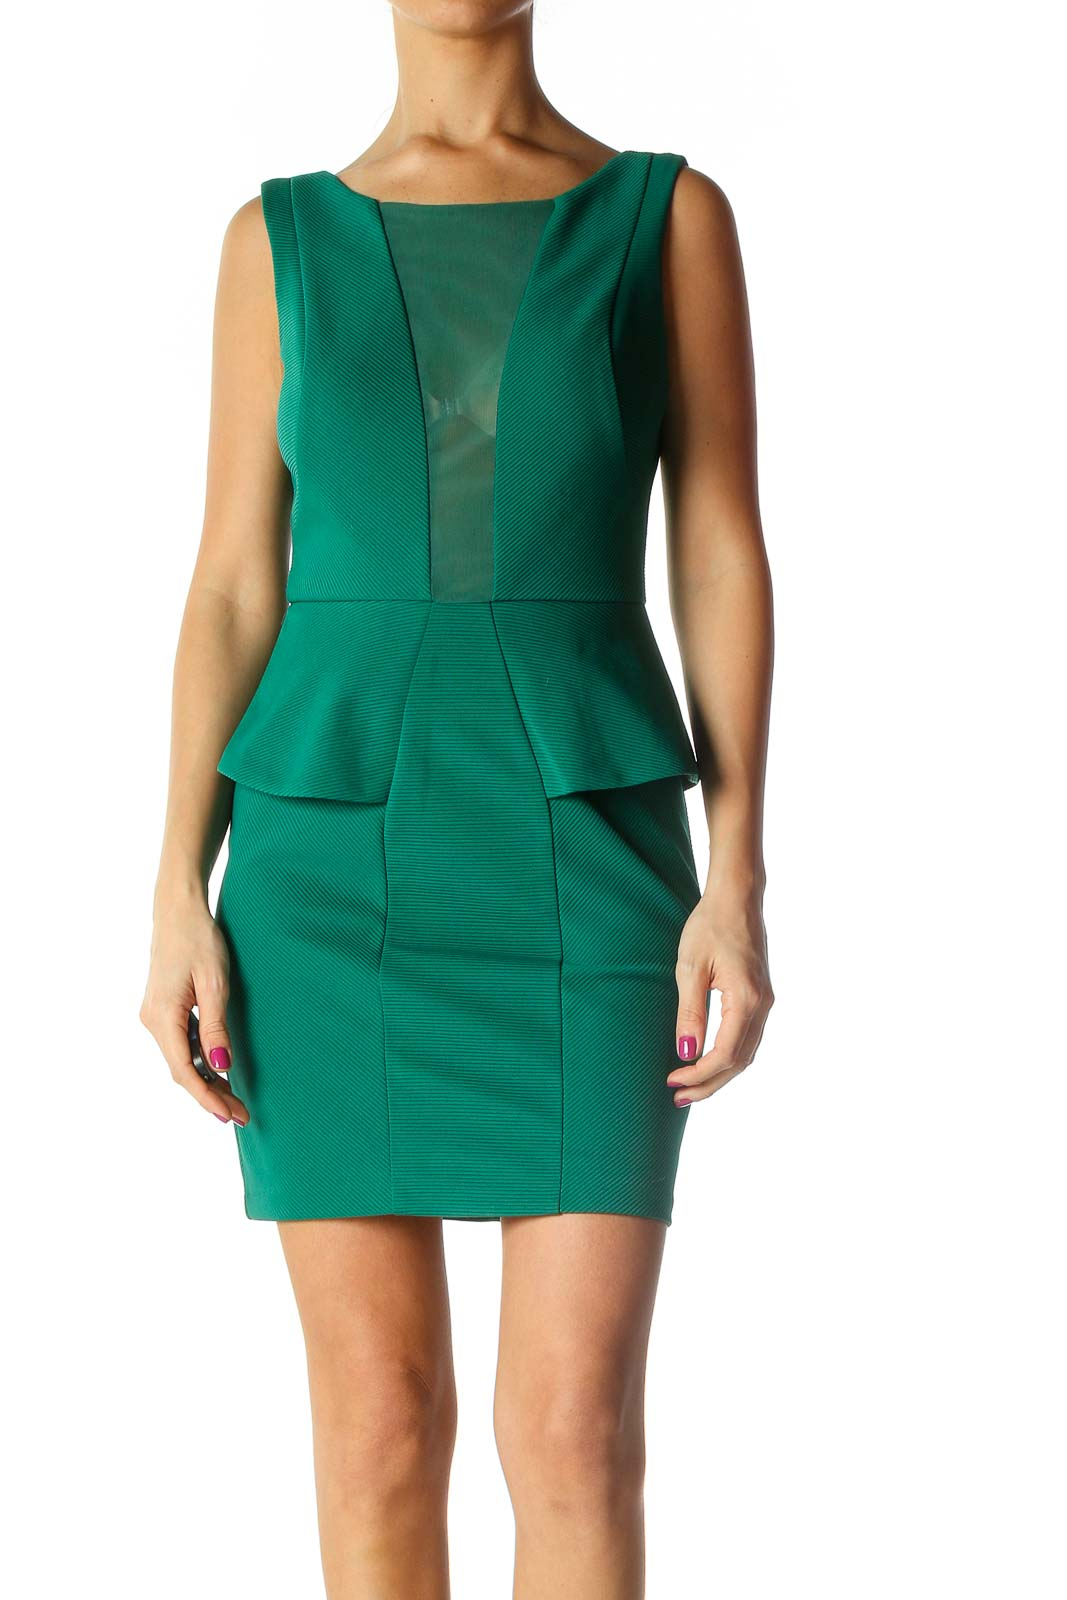 Green Solid Sheath Dress Front